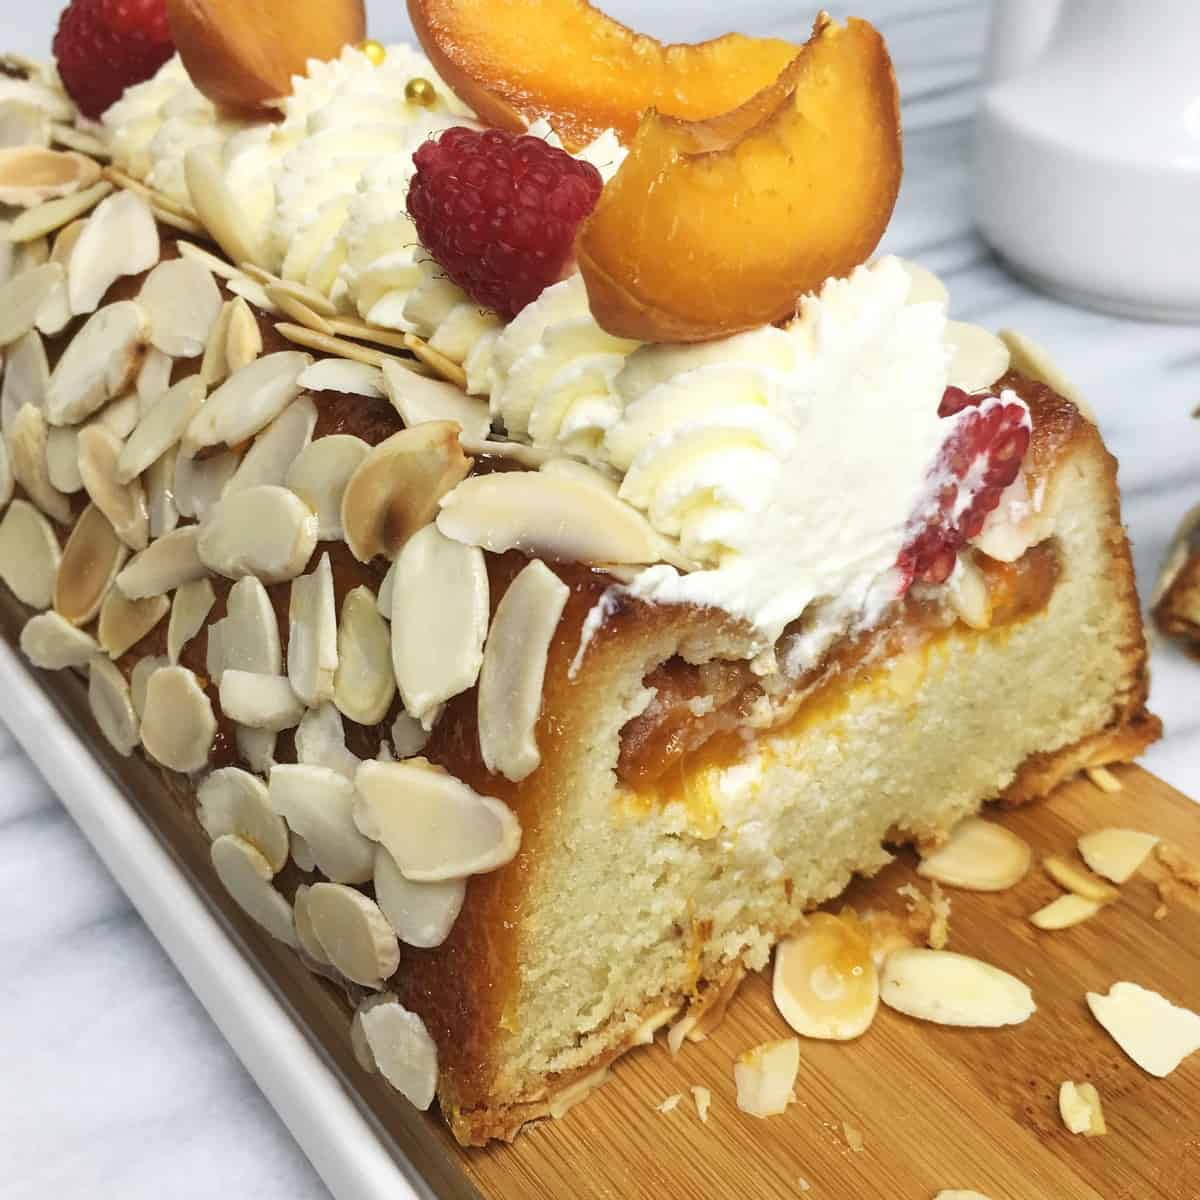 Sliced cake with flaked almonds all over, whipped cream, and apricots on top